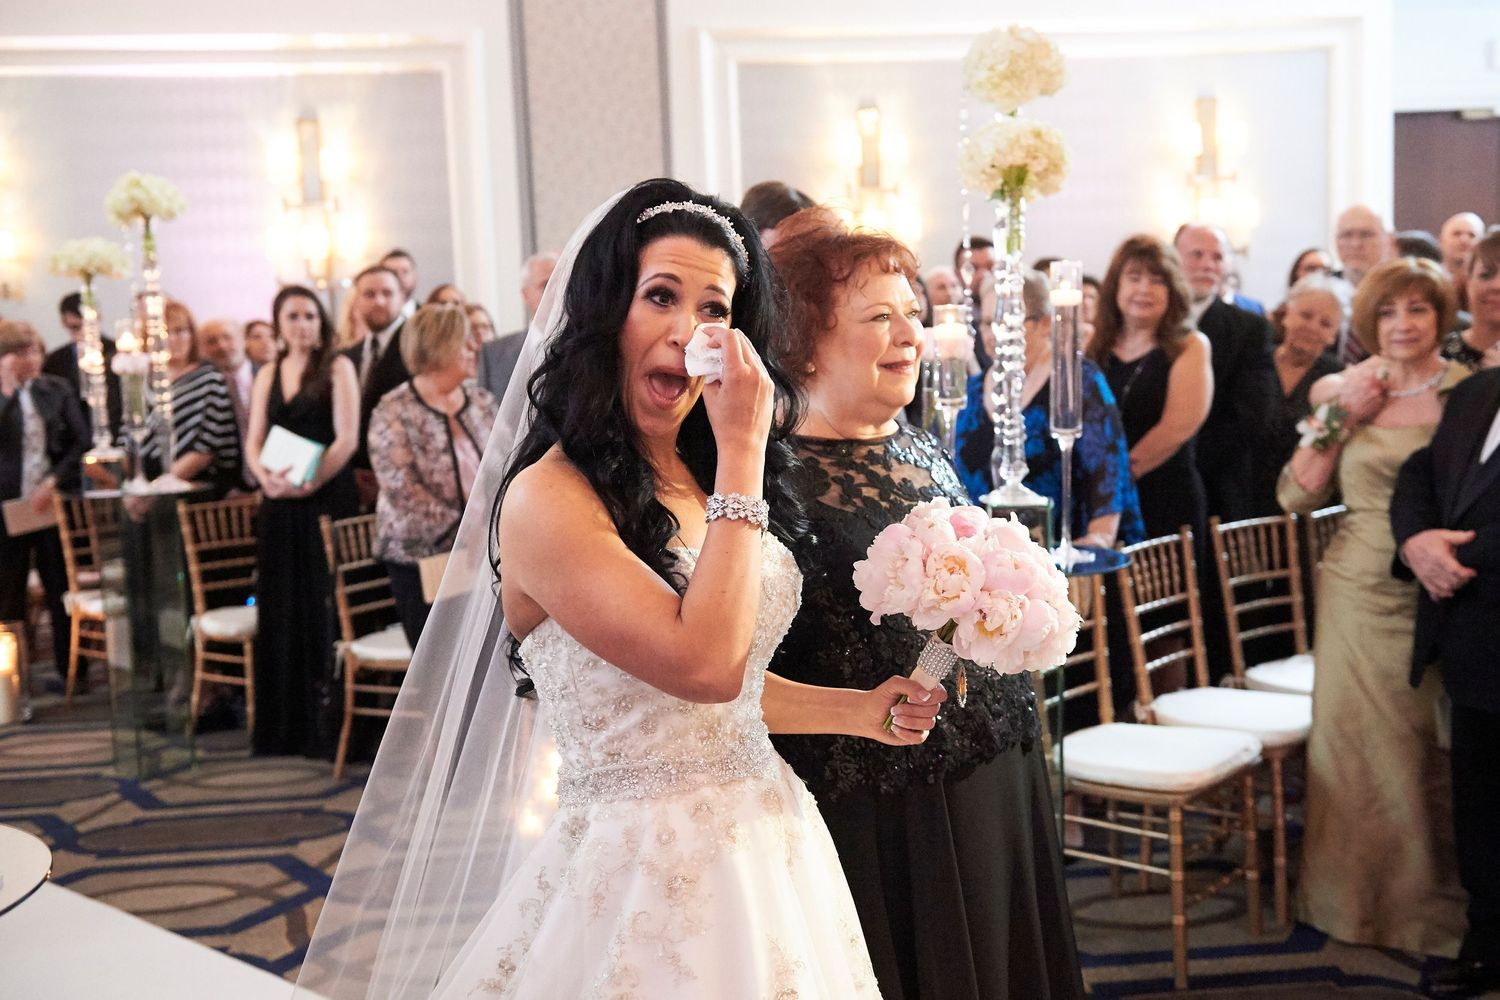 bride wipes tear during ceremony at the Marriott in Old City Philadelphia